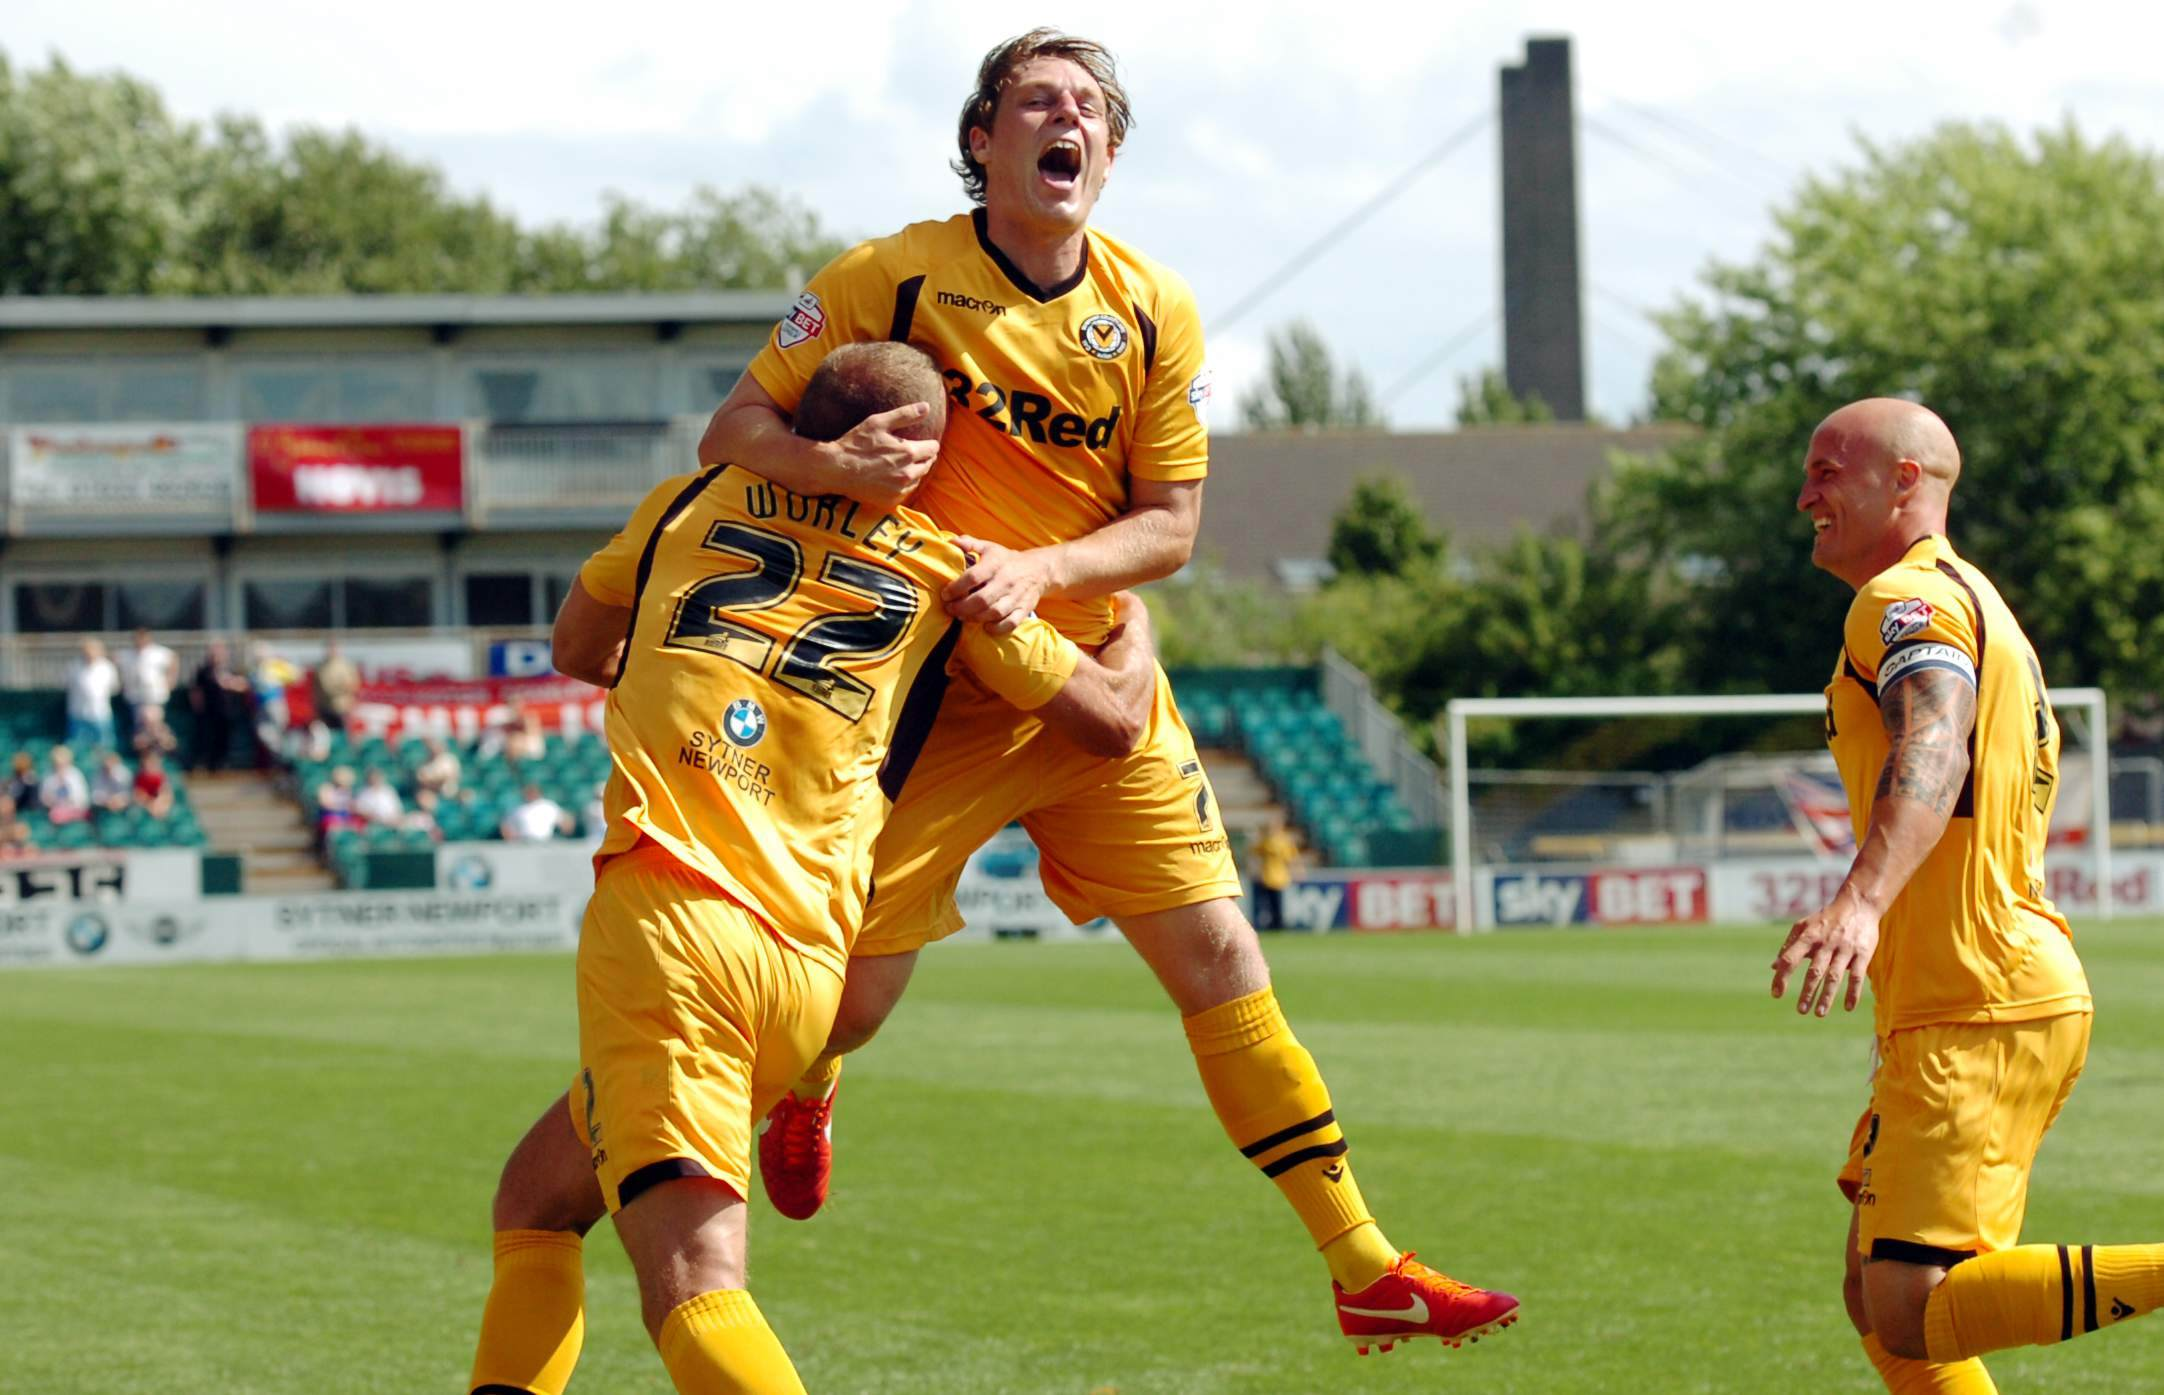 SWA ST 03/08/2013Newport County v Accrington Stanley in league 2 at Rodney Parade - Harry Worley celebrates opening the scoring with Adam Chapman and David Pipe (3112641)